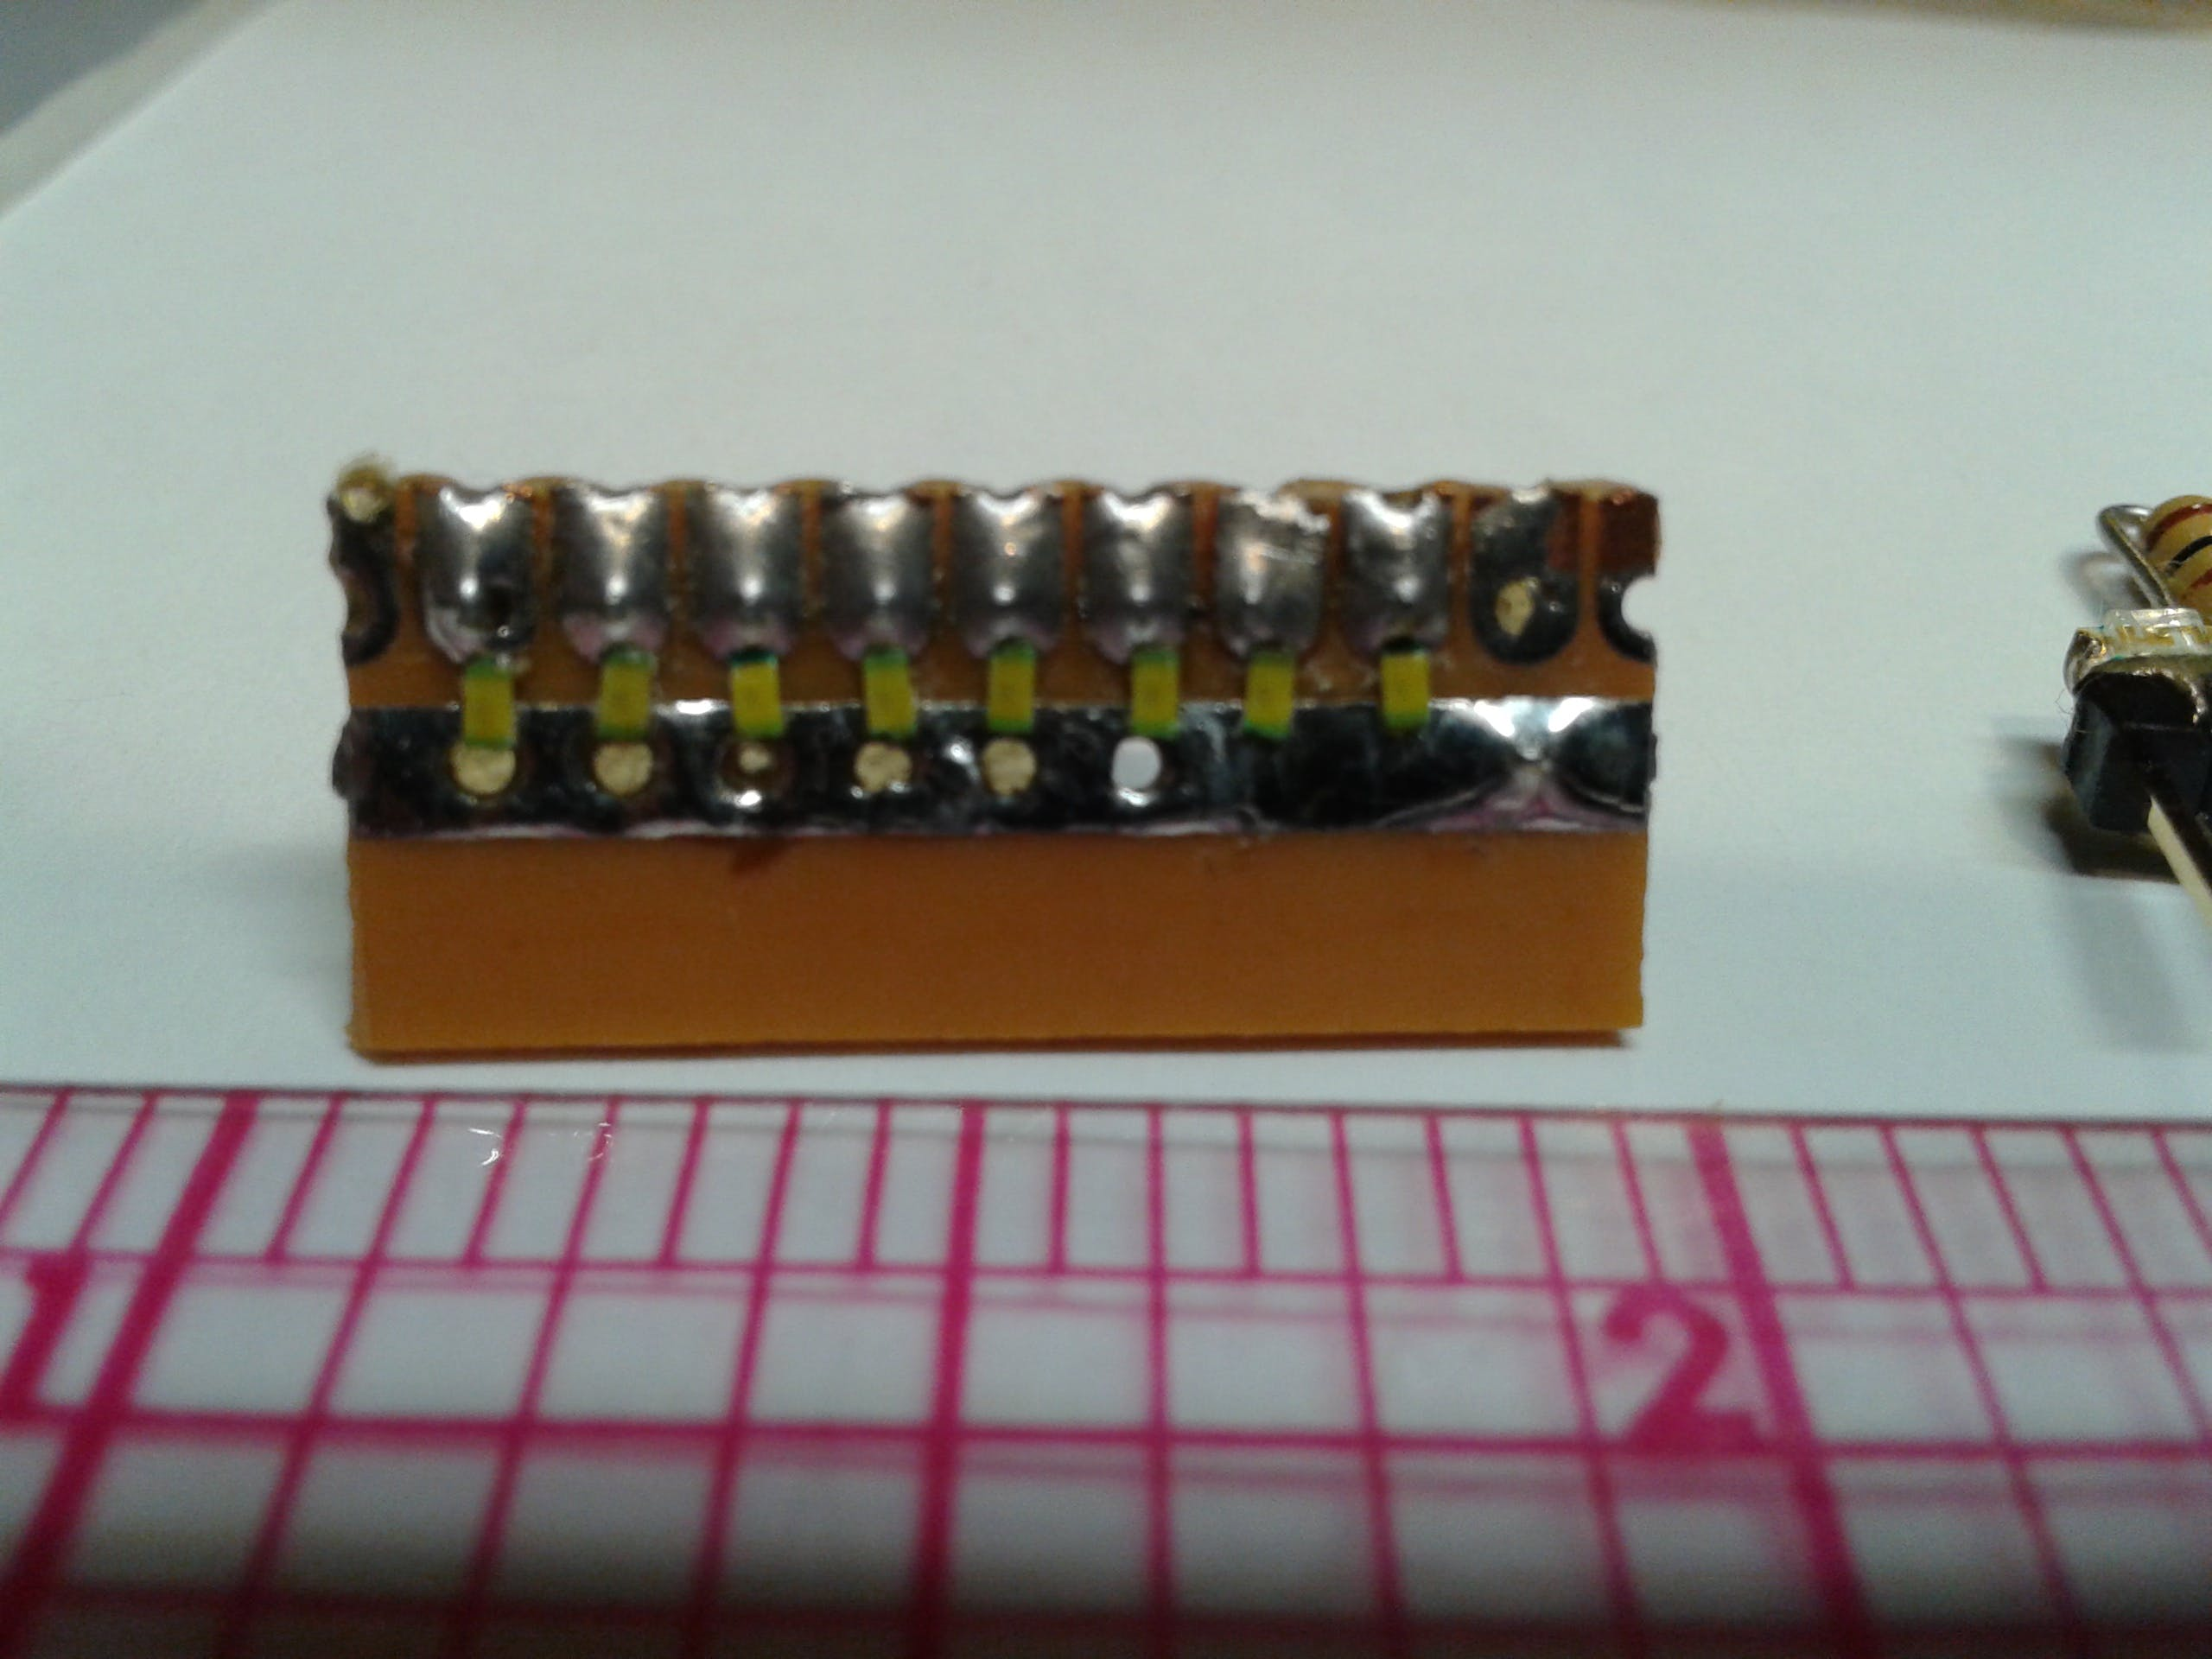 Scrap of protoboard used to mount LEDs